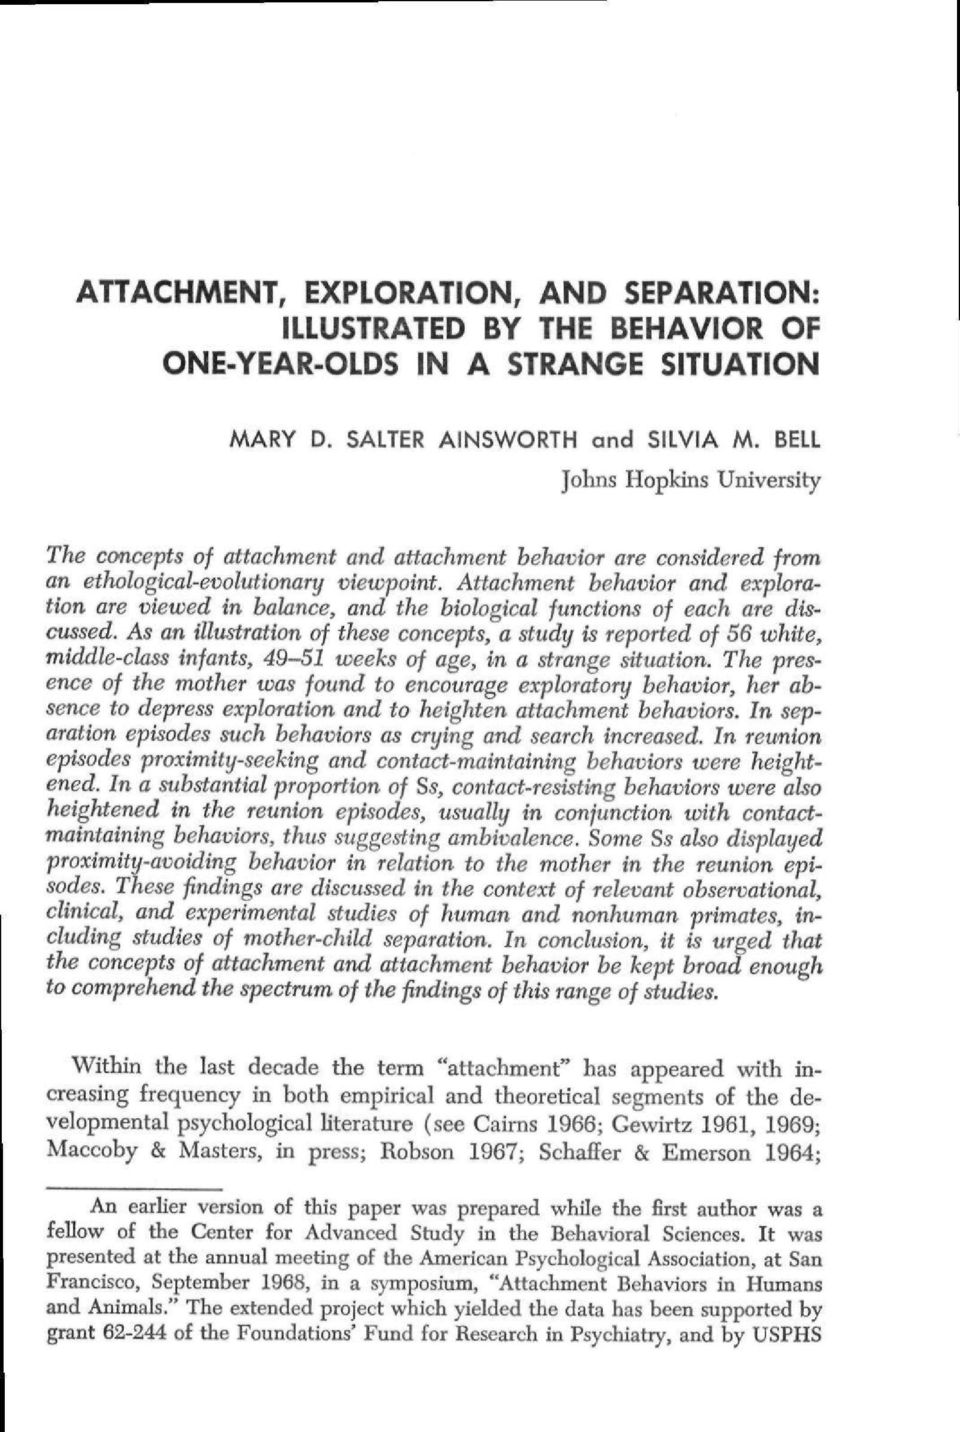 Attachment heliavior and exploration are viewed in balance, and the biological functions of each are discussed.